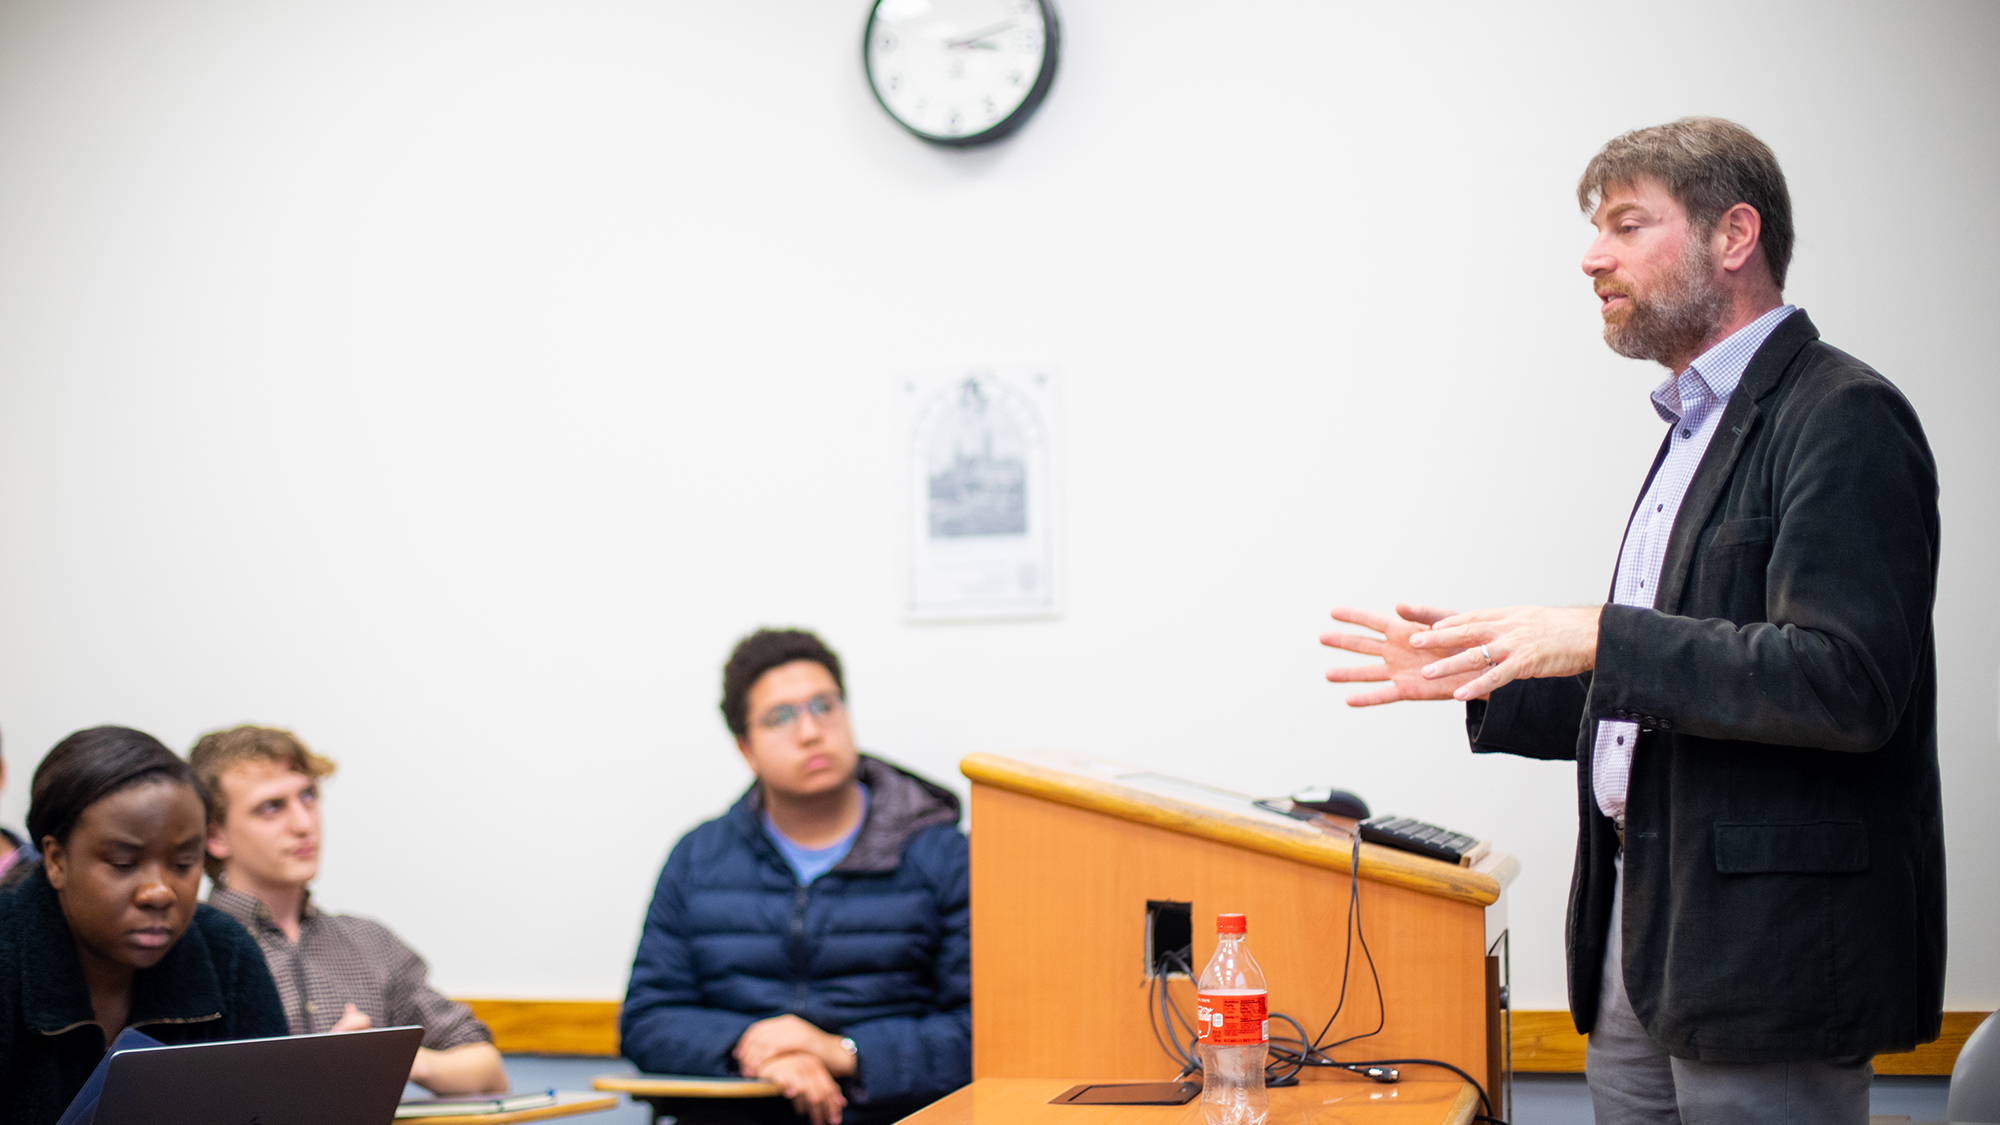 Adam Rothman gestures standing near a podium in a classroom with three students listening